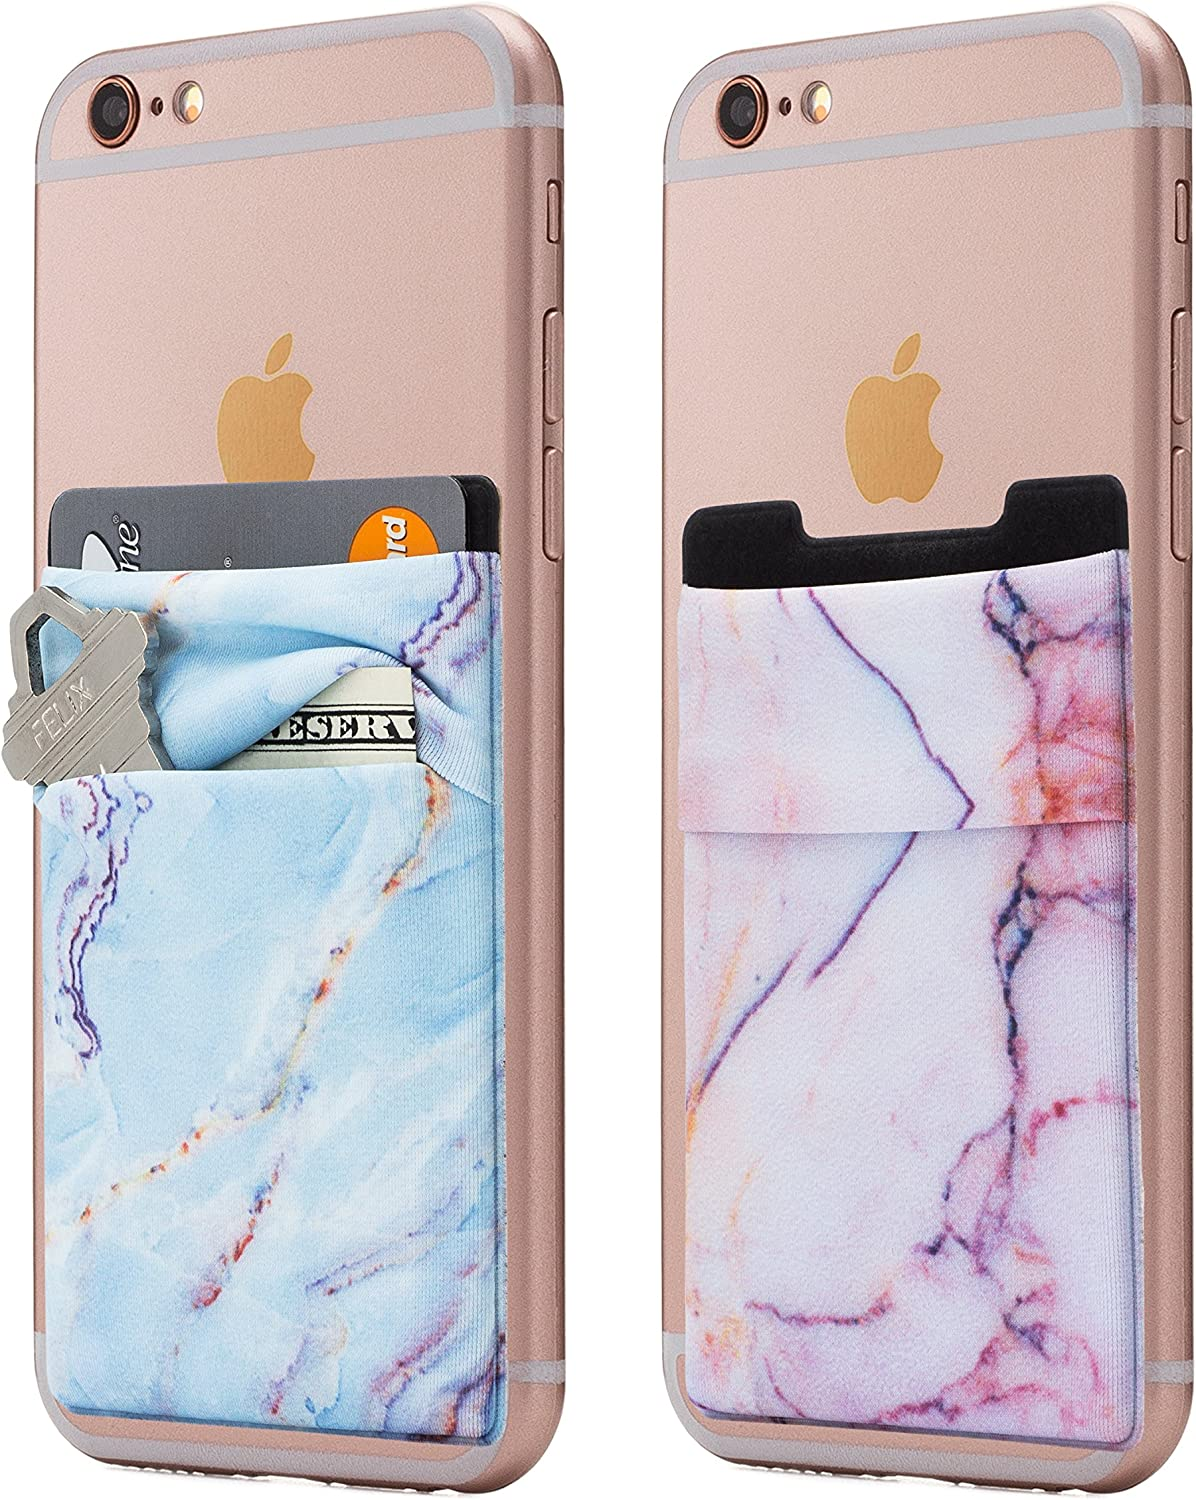 (Two) Stretchy Marble Cell Phone Stick On Wallet Card Holder Phone Pocket for iPhone, Android and All Smartphones. (Blue&Pink)